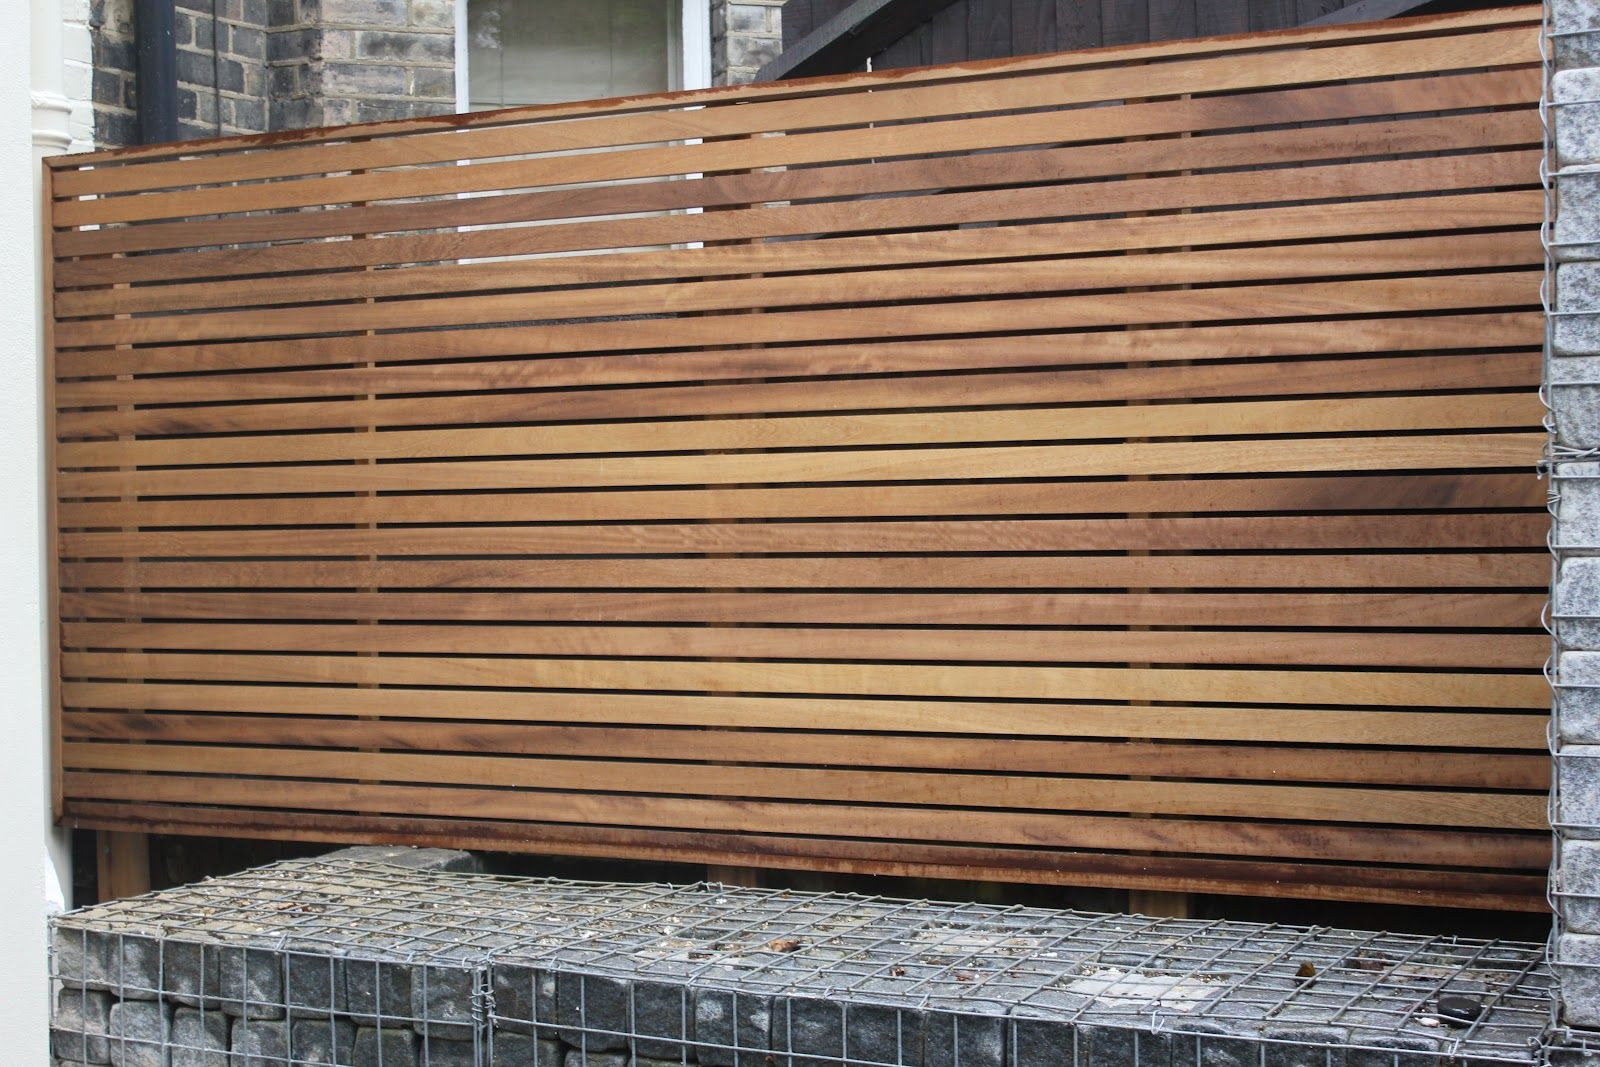 Garden Wooden Fence Designs march 2013 wooden fence on east and west sides of the backyard Contemporary Wooden Wall Cladding And Fencing Ideas